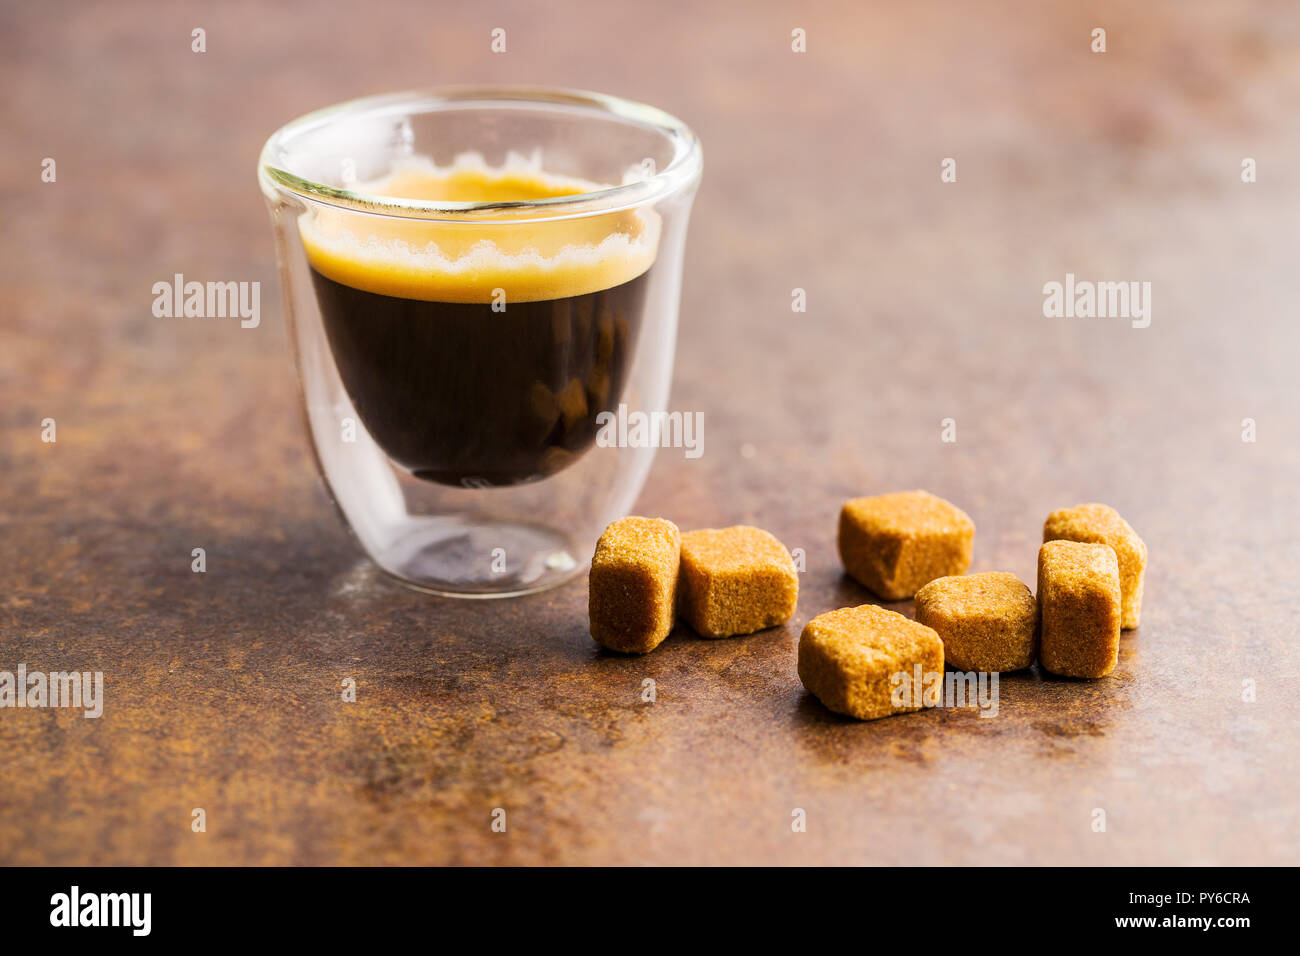 Cup of espresso coffee old kitchen table. - Stock Image